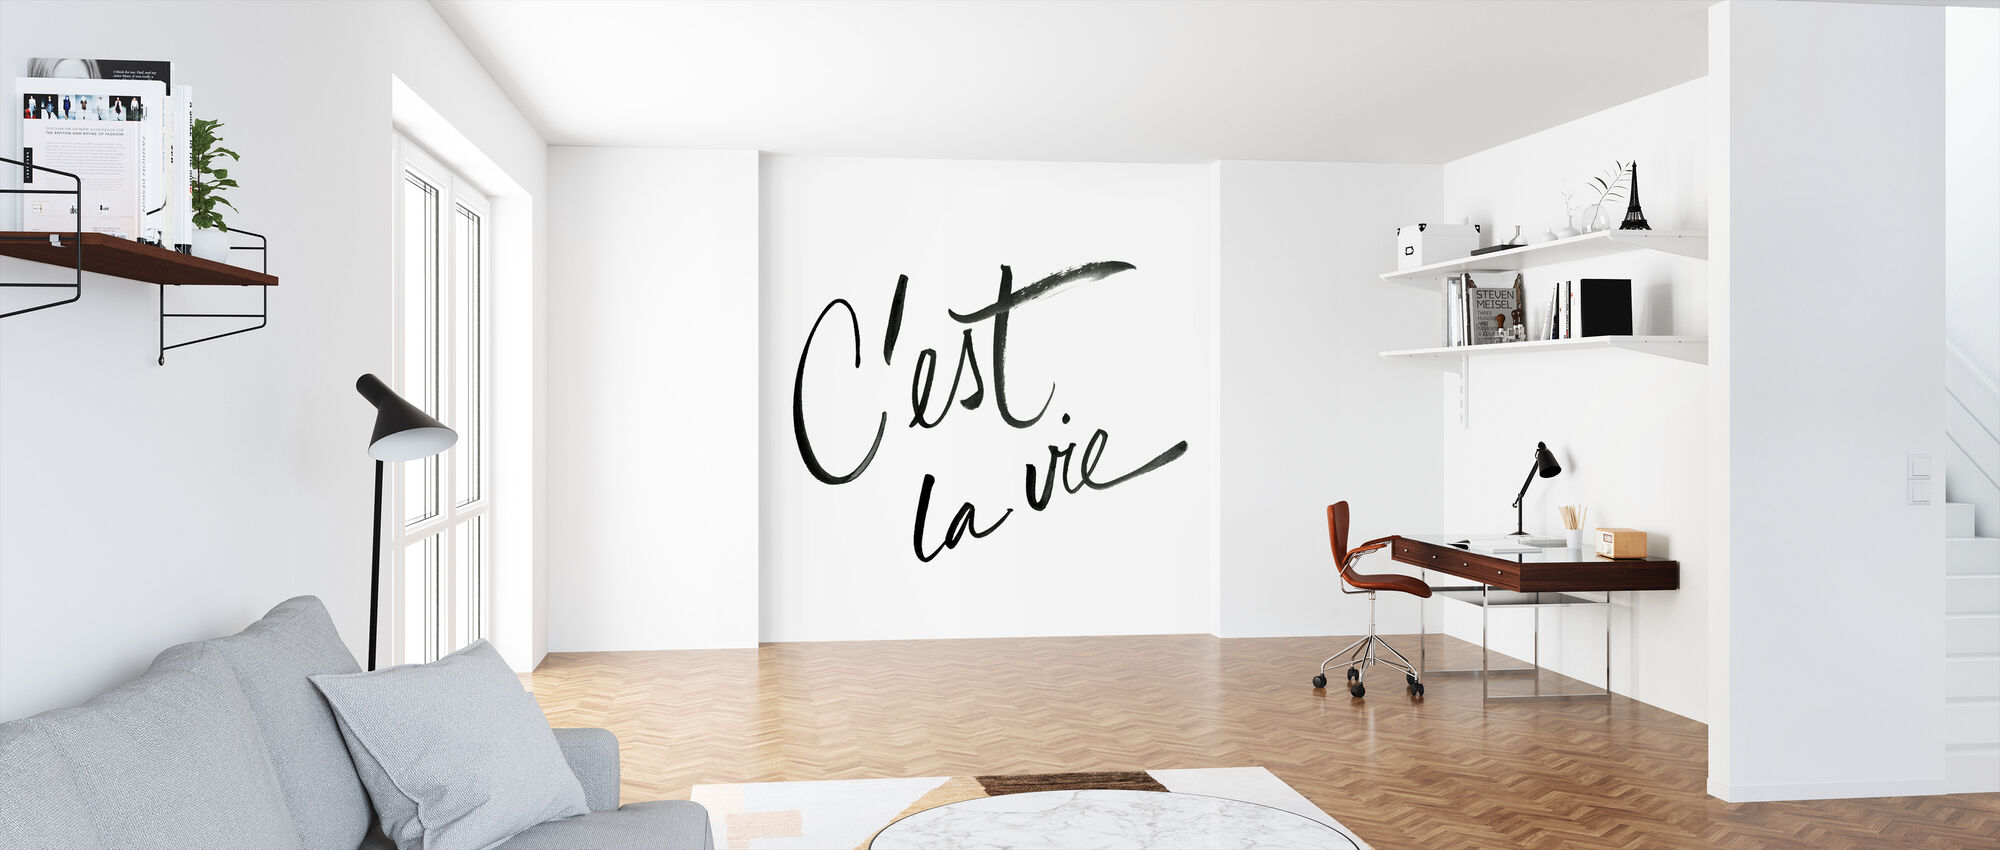 Cest La Vie A Wall Mural For Every Room Photowall